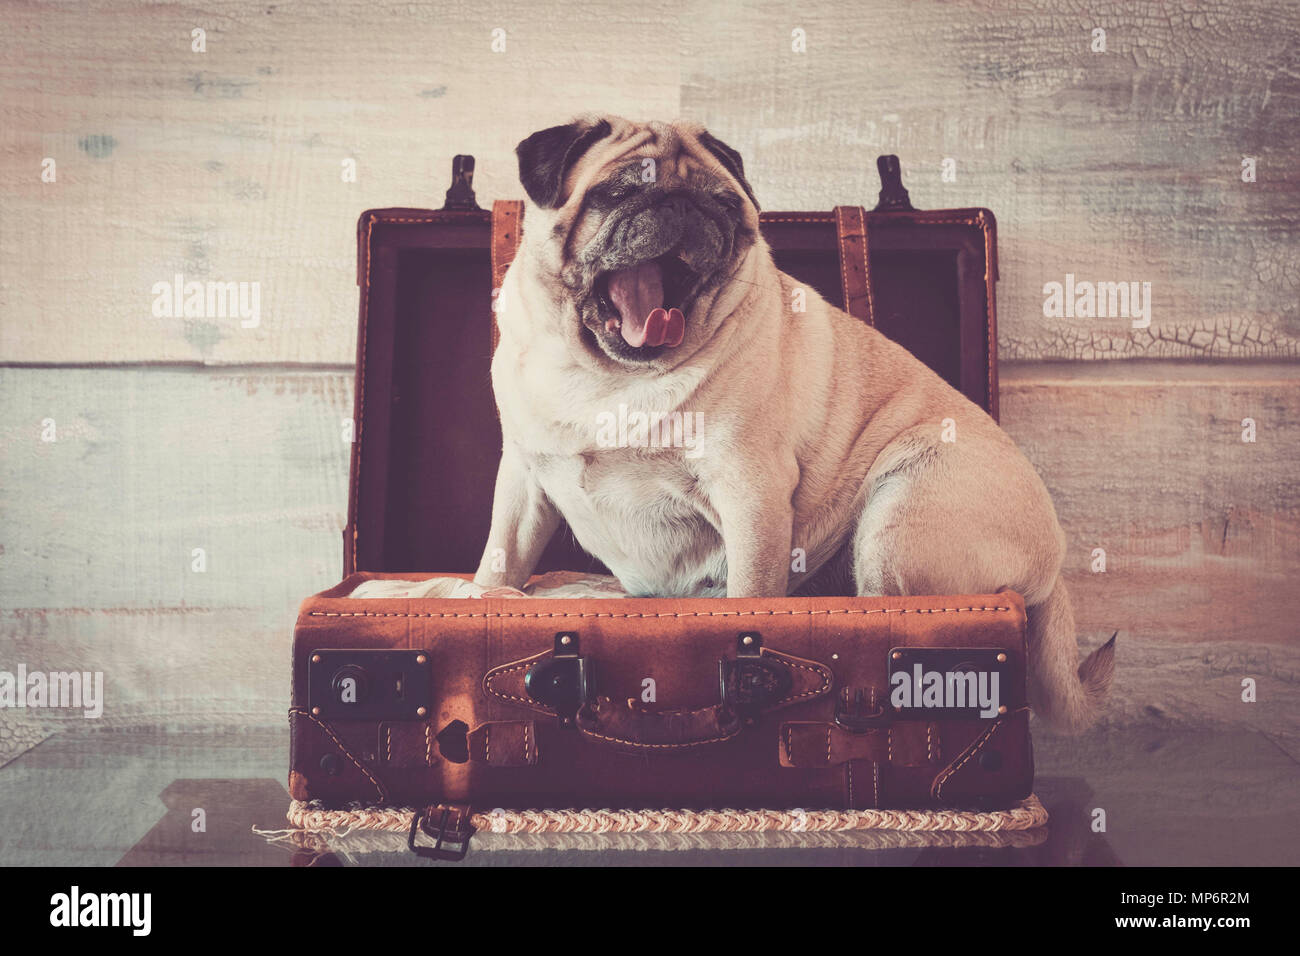 vintage filter and scene with old white pug lay down inside an old carrying case luggage. defocused background ancient style for wallpaper. lazy trave Stock Photo